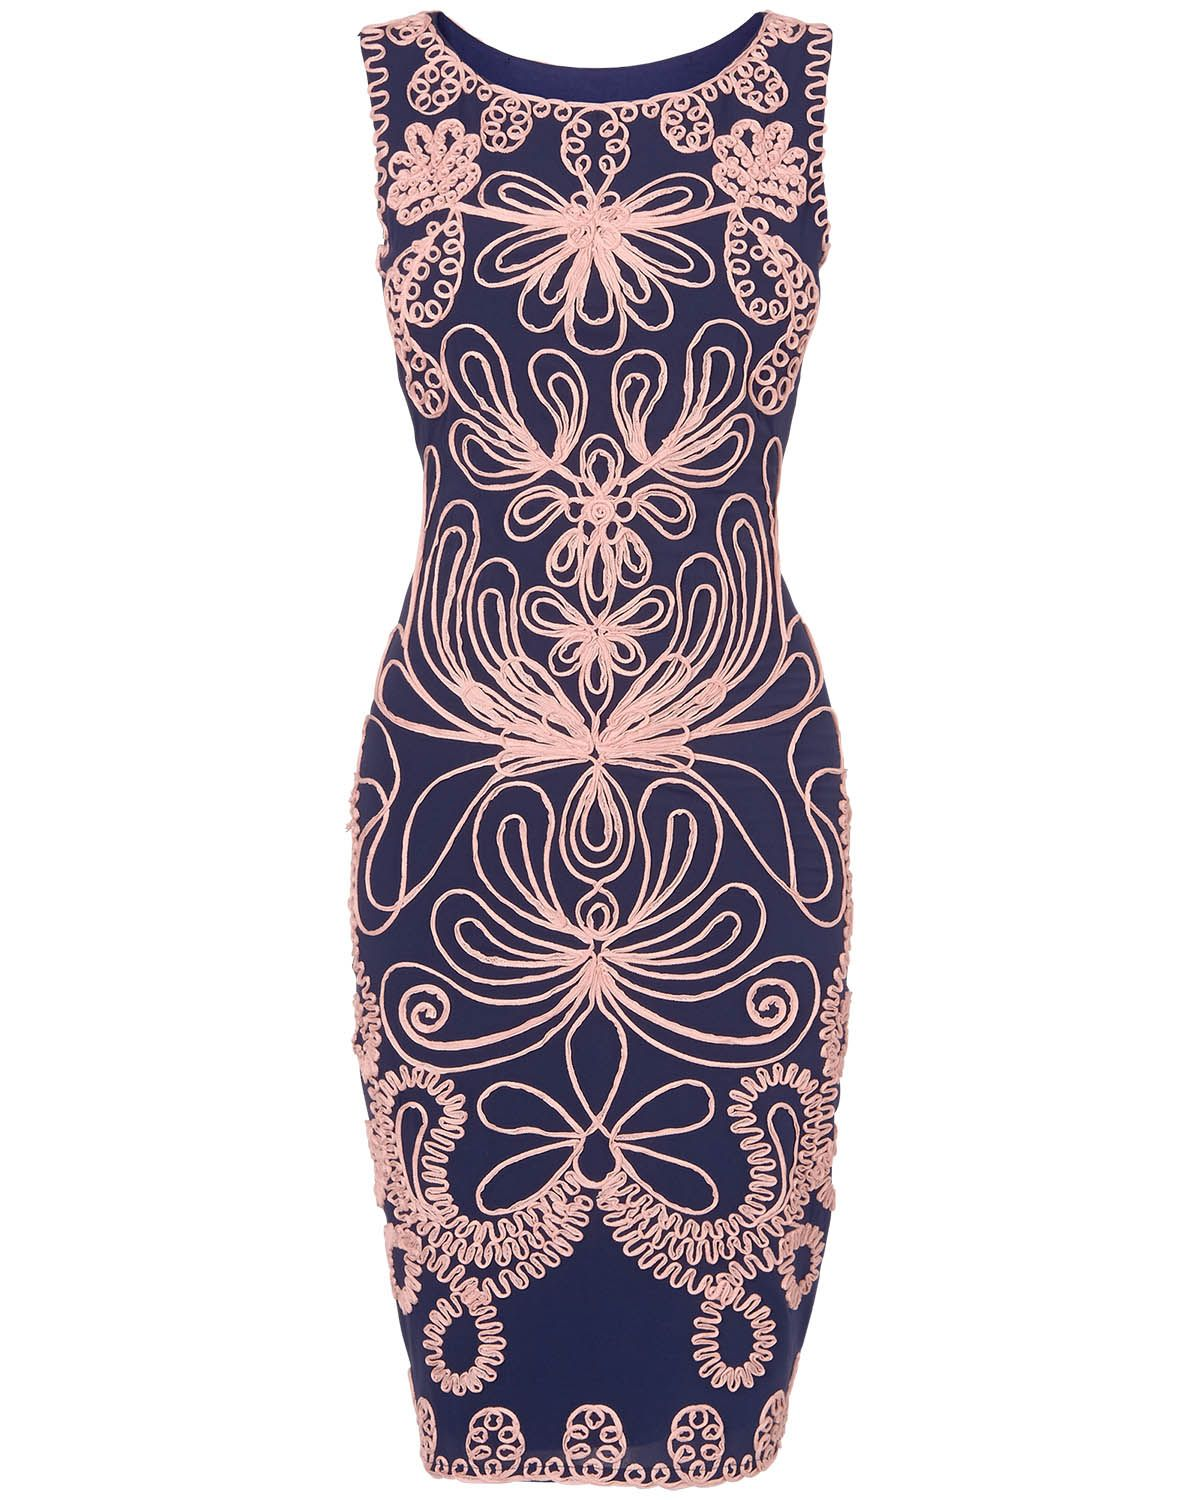 Occasion Dresses | Blue Camilla Tapework Dress | Phase Eight | My ...